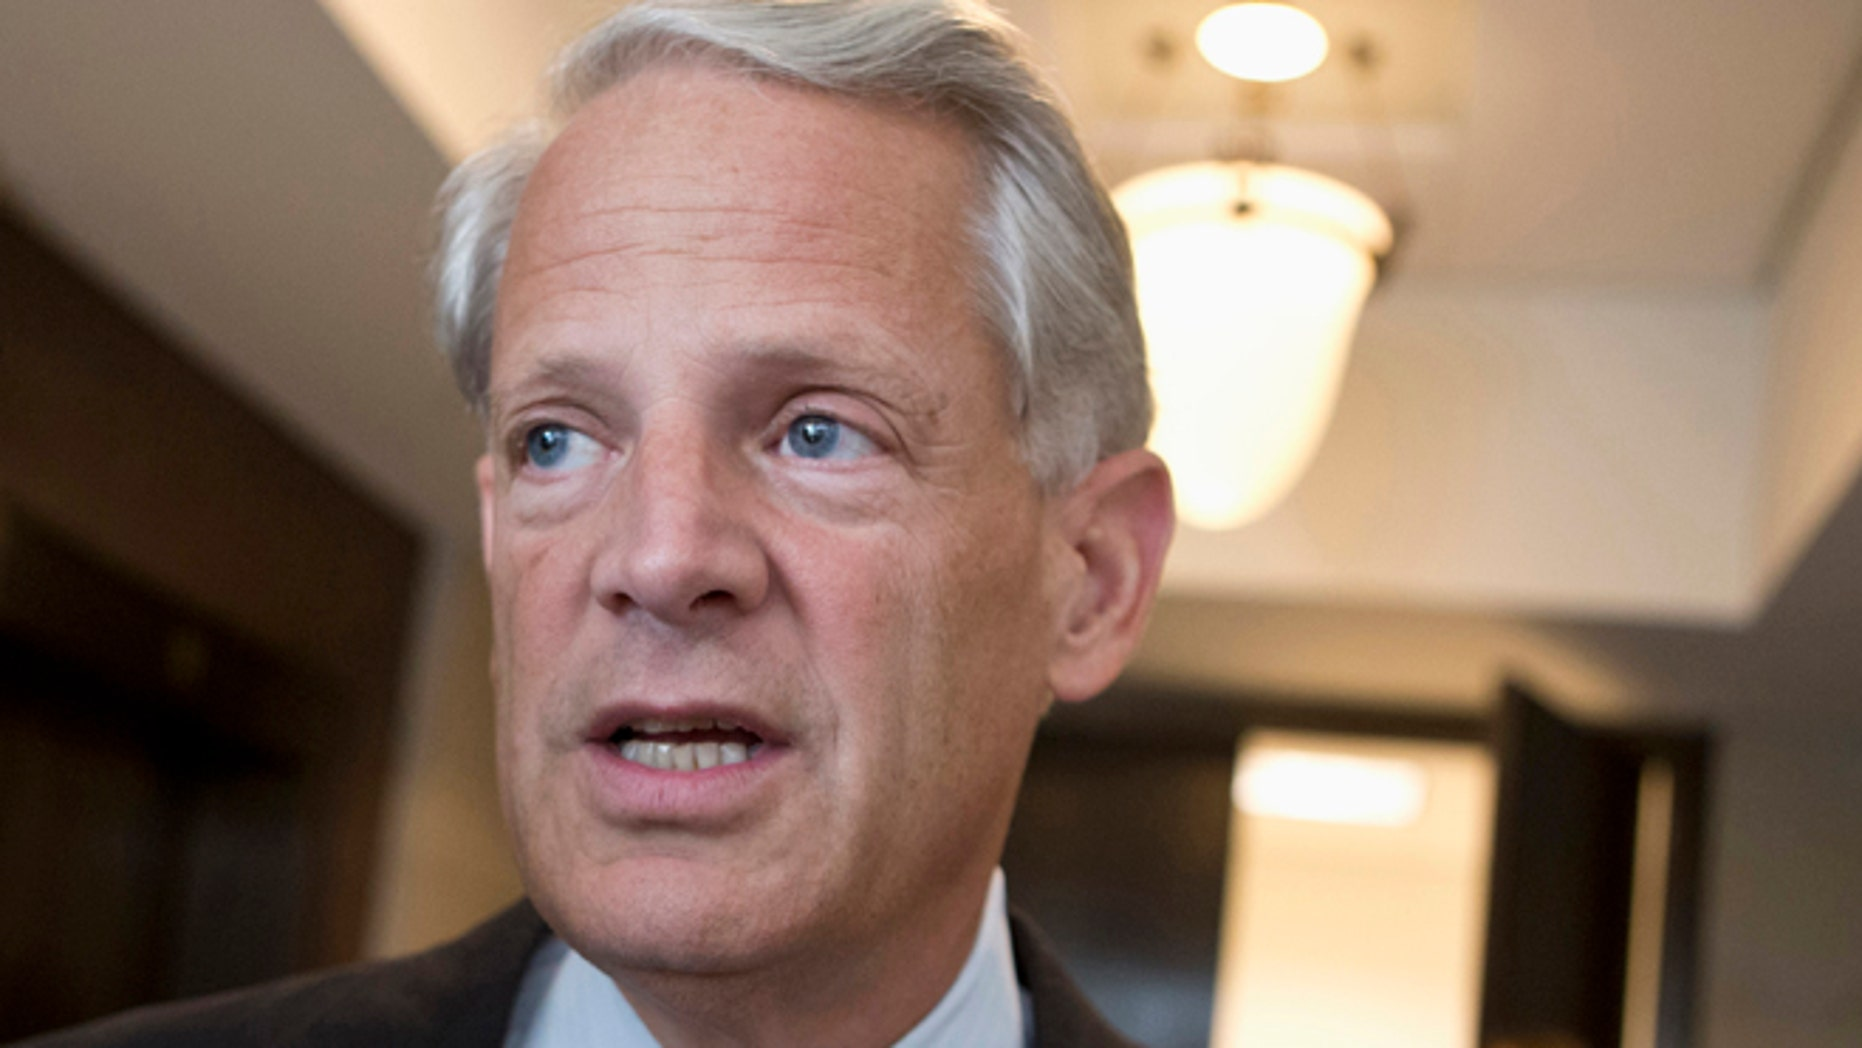 In this Sept. 3, 2013 file photo, Rep. Steve Israel, D-N.Y. is seen on Capitol Hill in Washington.